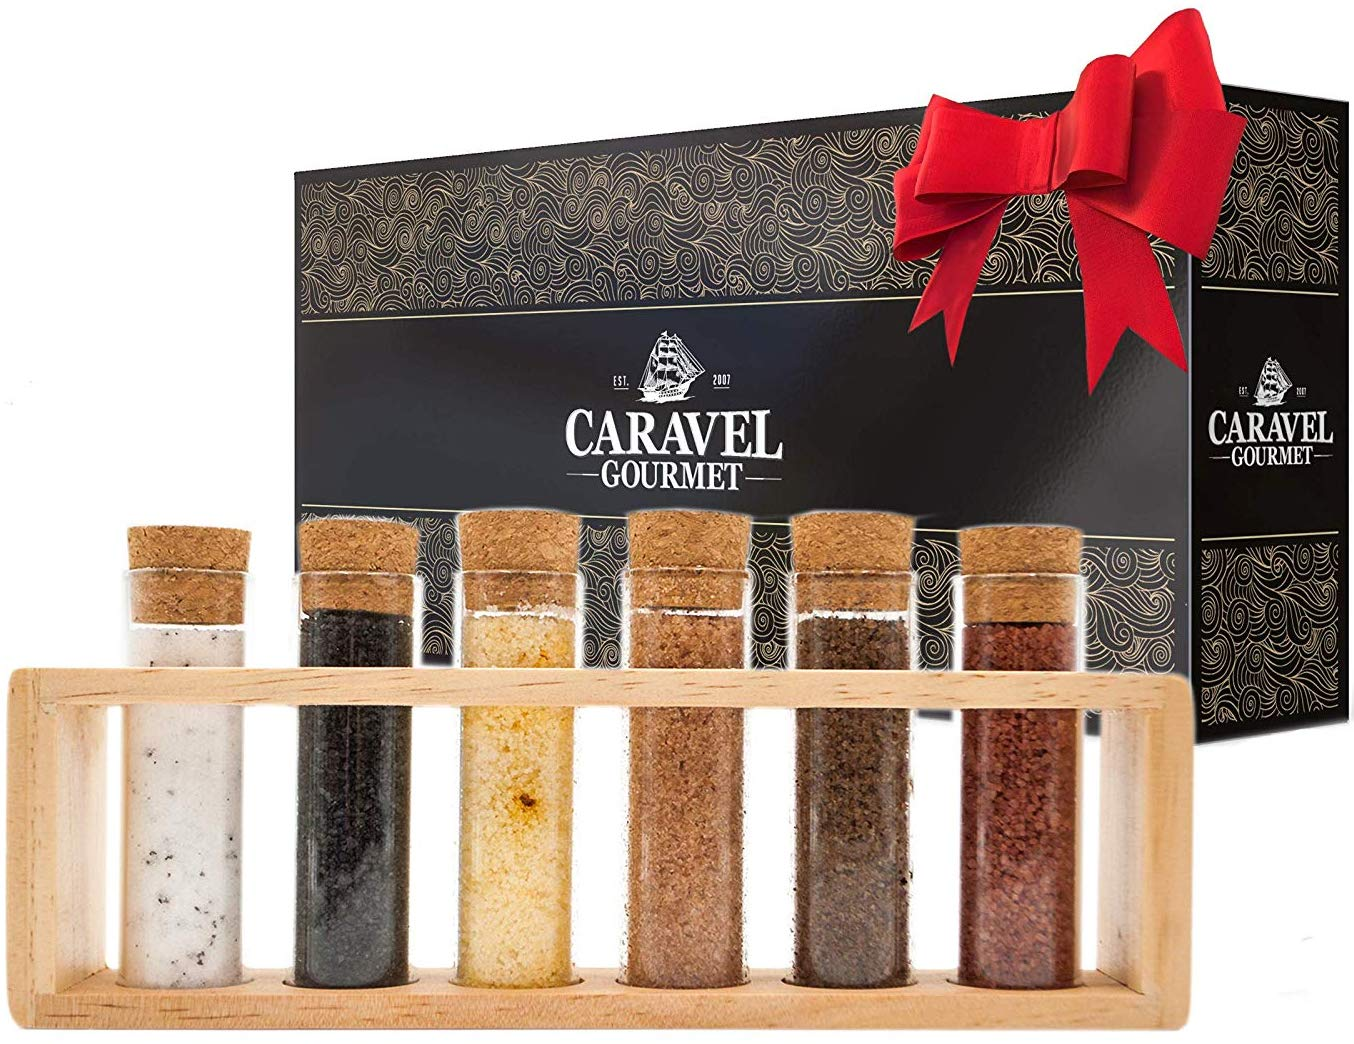 The Deluxe Gourmet Infused Sea Salt Sampler - Beautiful Wooden Rack Gift Set with 6 Reusable Glass Vials - 1.7 oz. each - Holiday Gift for Cooks, Hostesses, Foodies